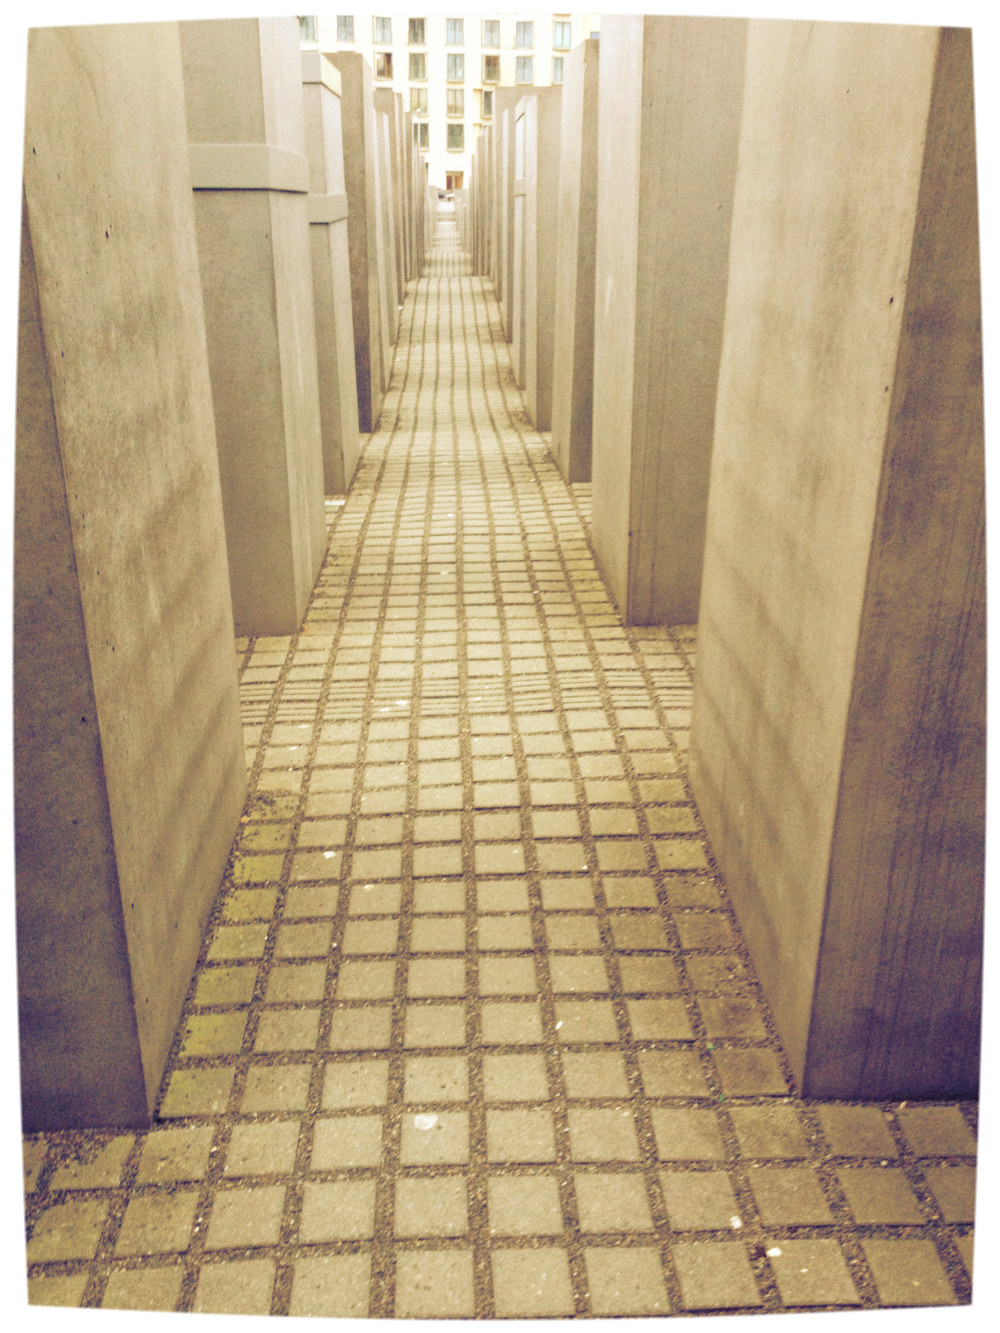 Holocaust Memorial, Berlin